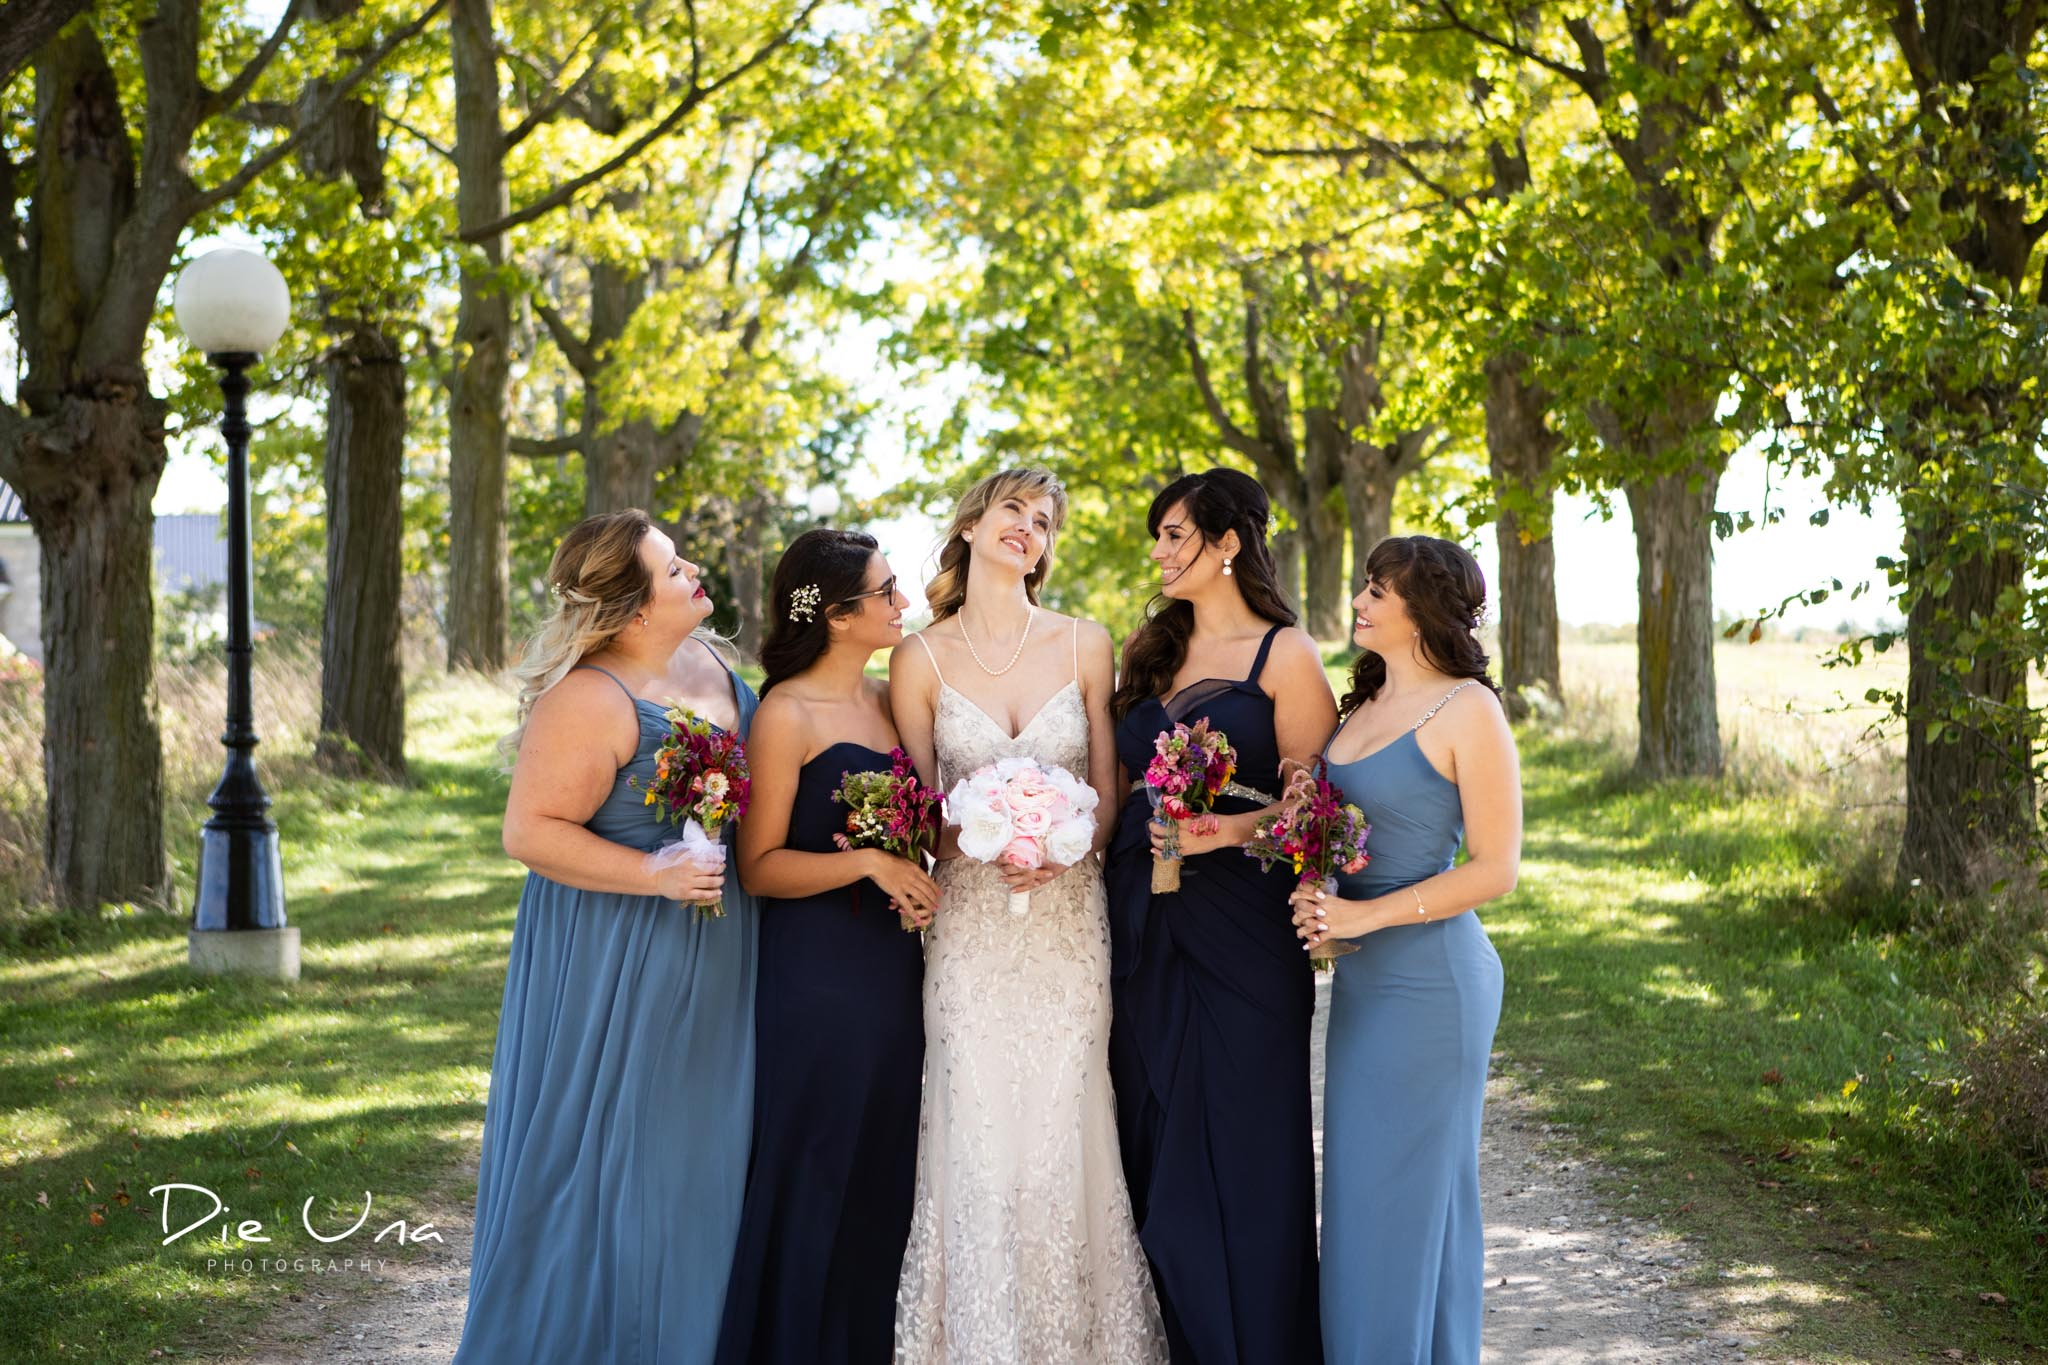 bride with bridesmaids wearing shades of blue dresses with lamp post in the background.jpg